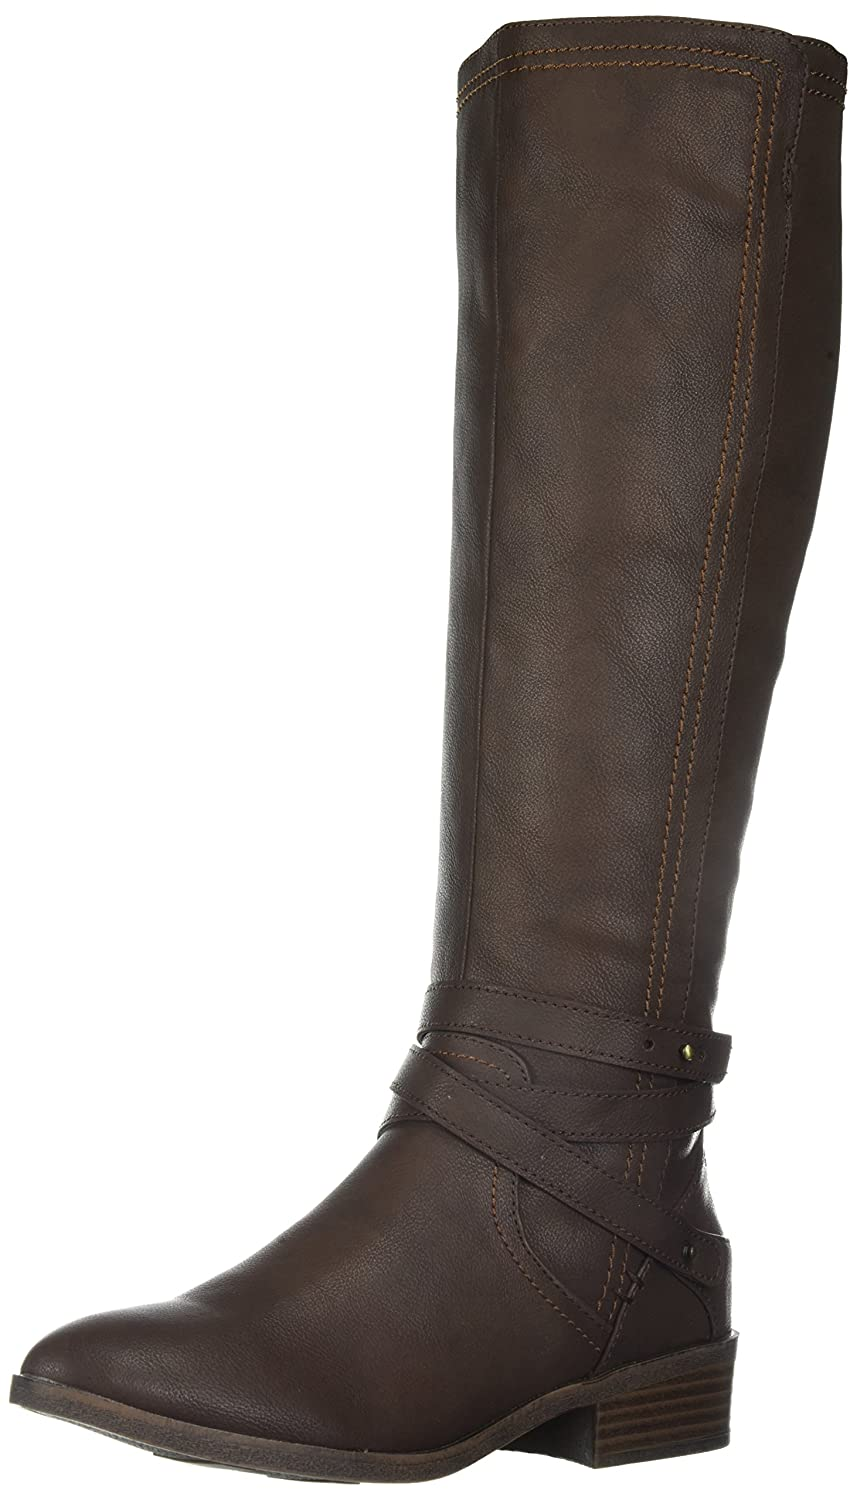 Fergalicious Women's Lennin Riding Boot B071VBXJQ6 8.5 B(M) US|Brown